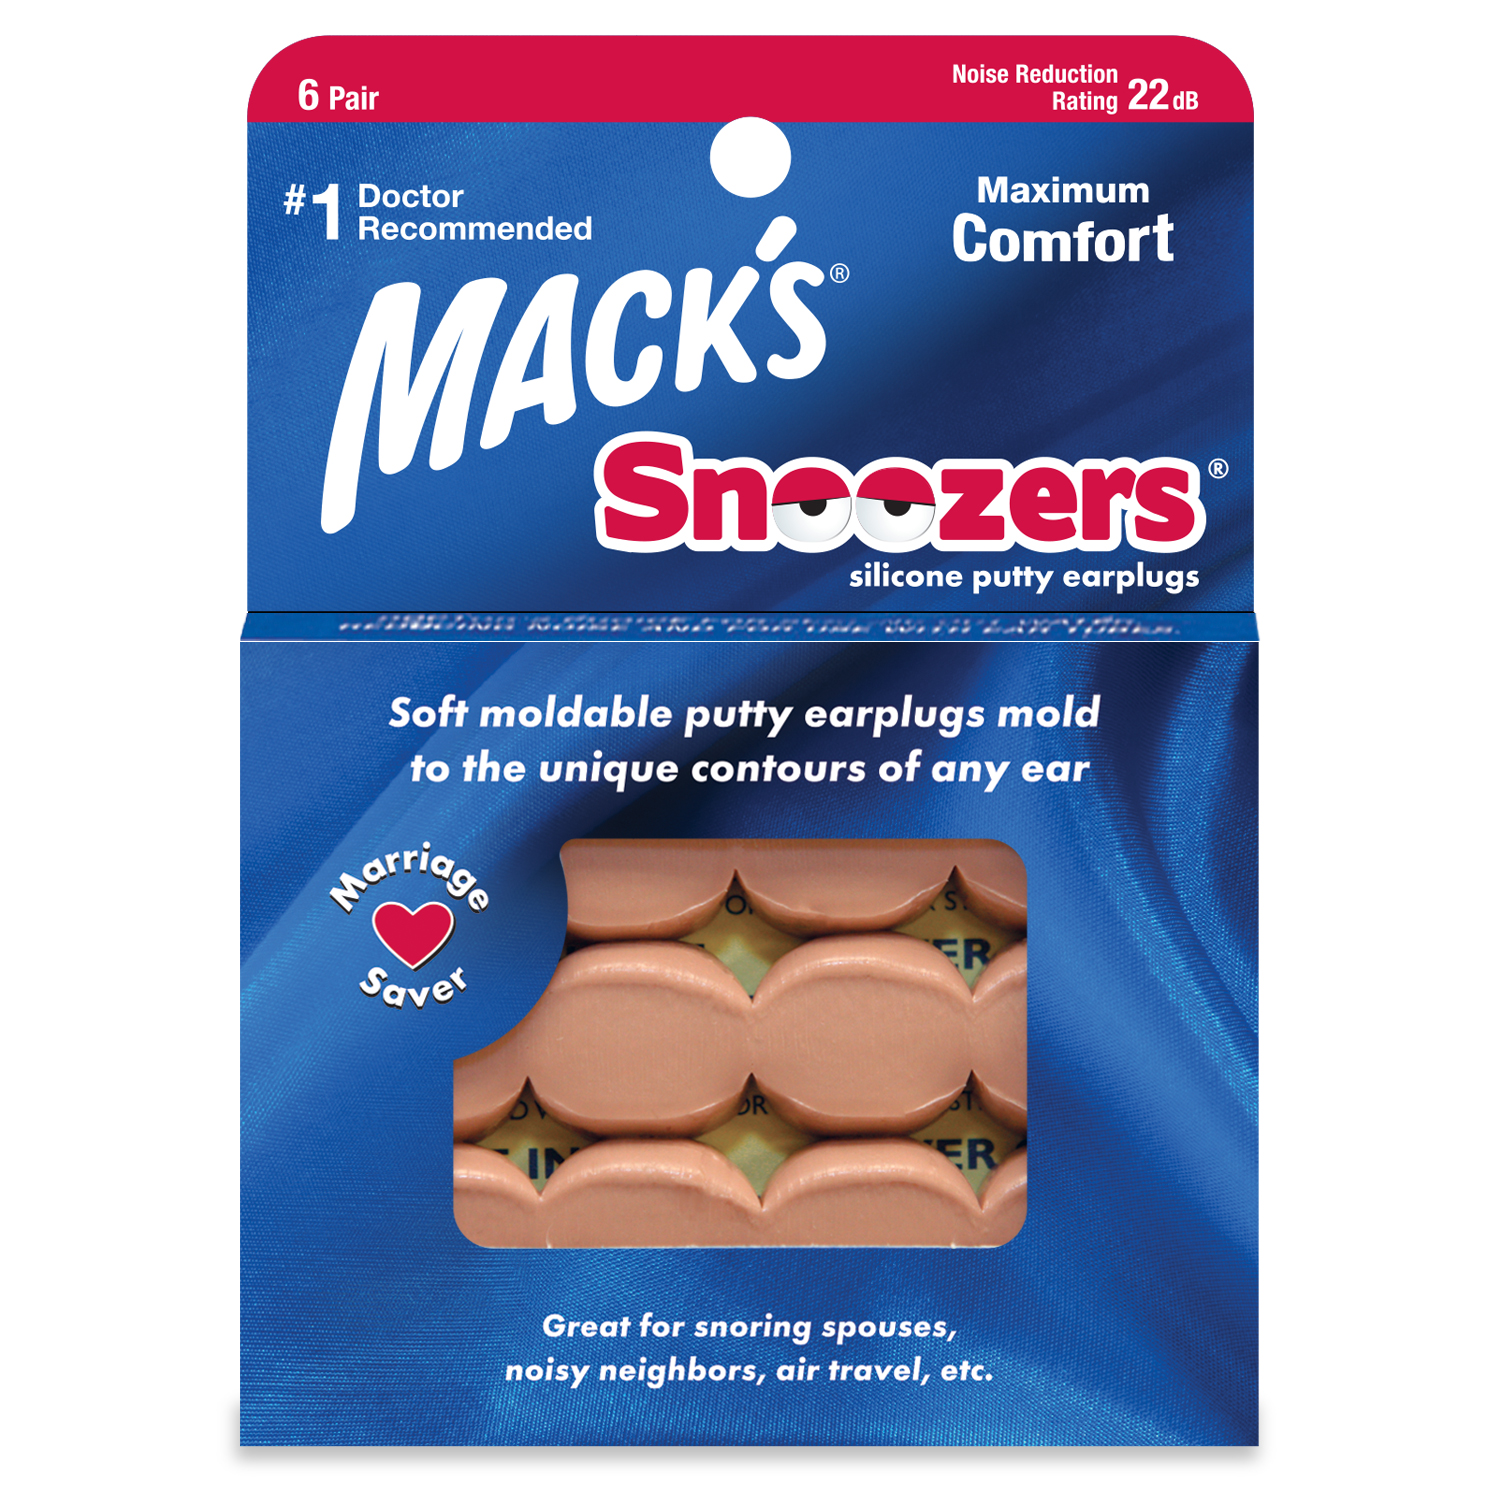 snoozers-silicone-ear-plugs-putty-earplugs